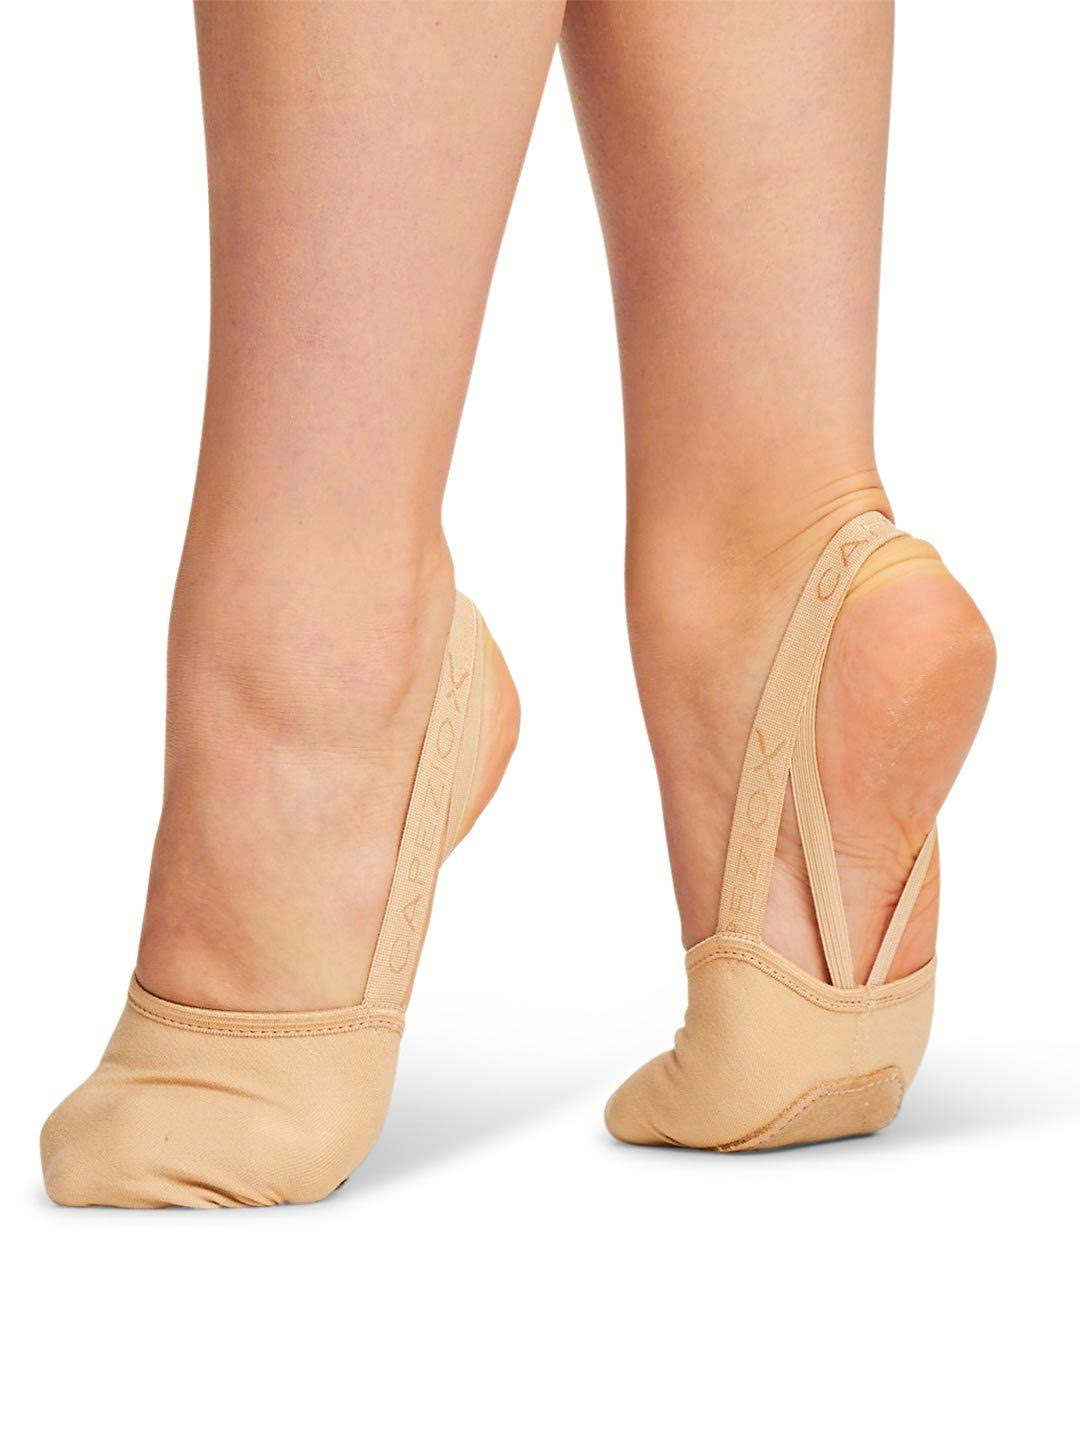 Capezio H064W Women's Hanami Pirouette Shoes - Nude, Large